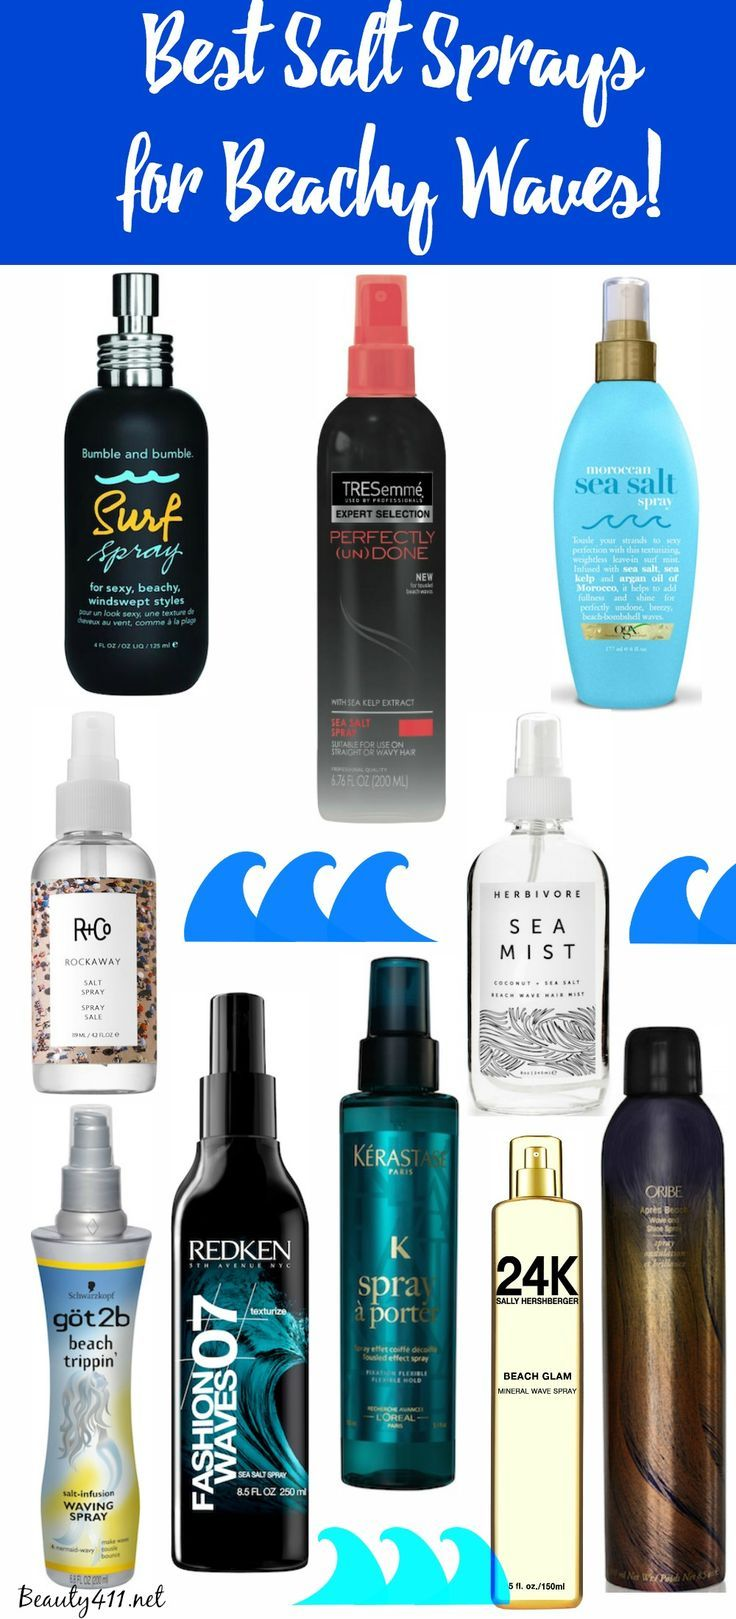 Mermaid hair don't care...Best Salt Sprays for Beachy Waves!